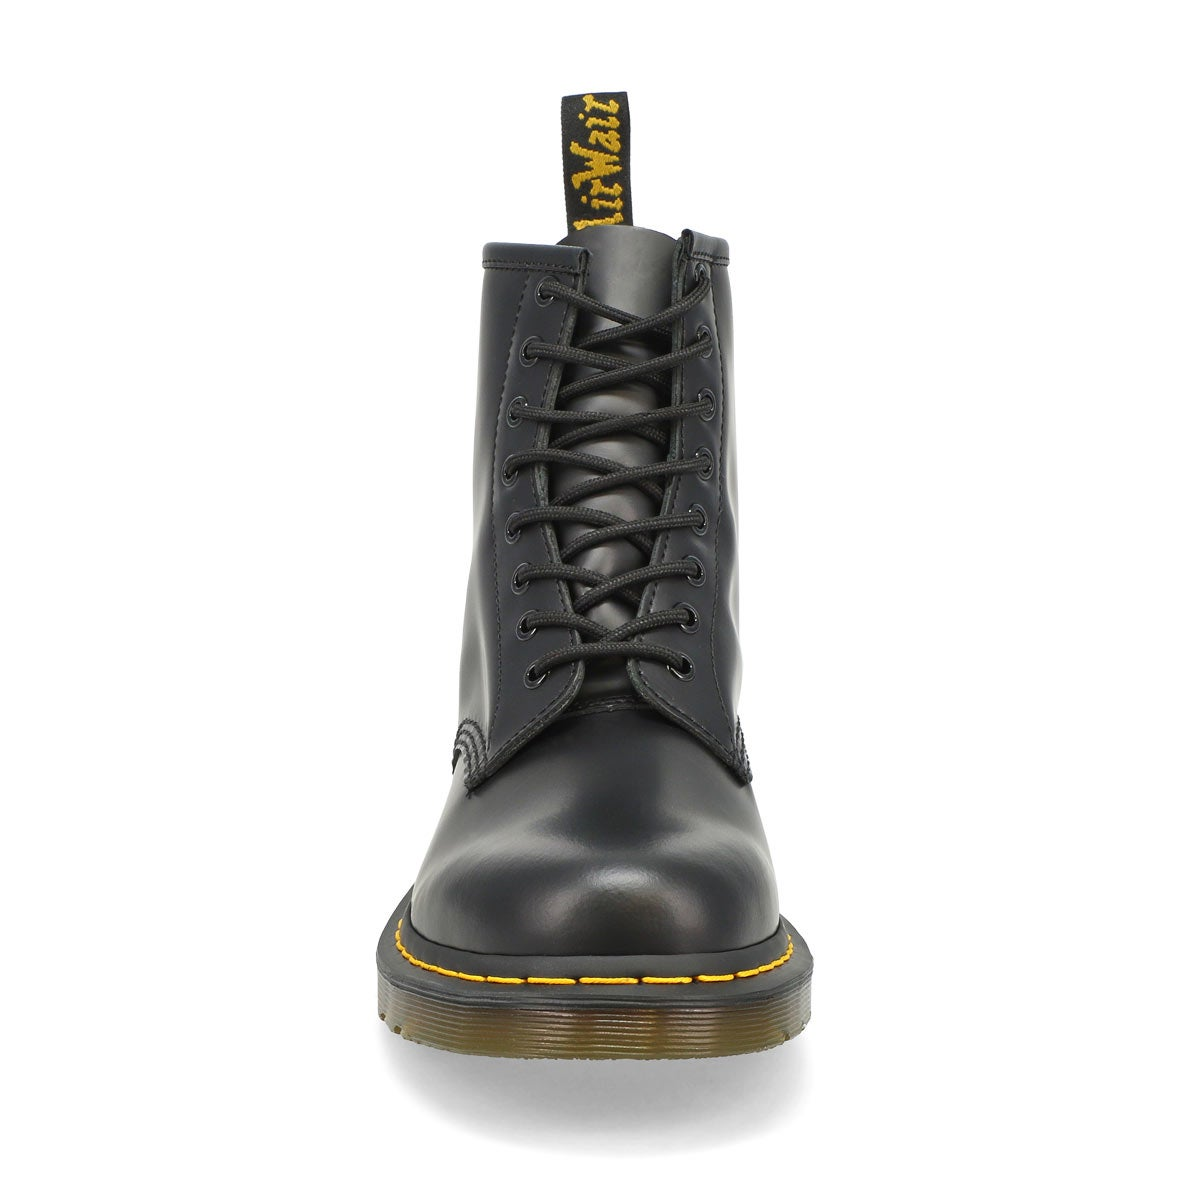 Mns 1460 8 eye black smooth boot